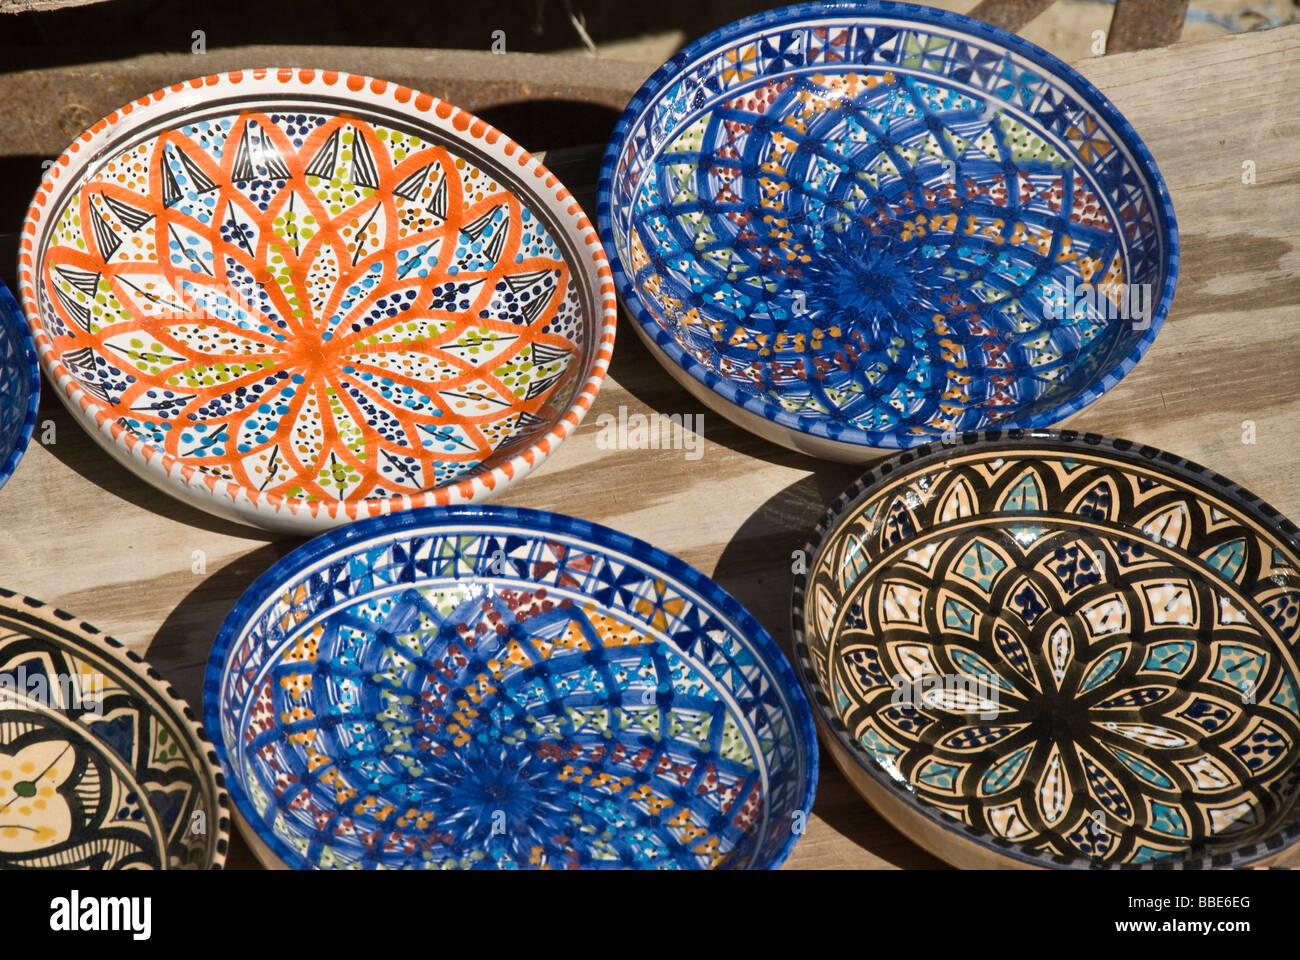 Traditional plates as souvenir in Tunisia & Traditional plates as souvenir in Tunisia Stock Photo: 24284024 - Alamy